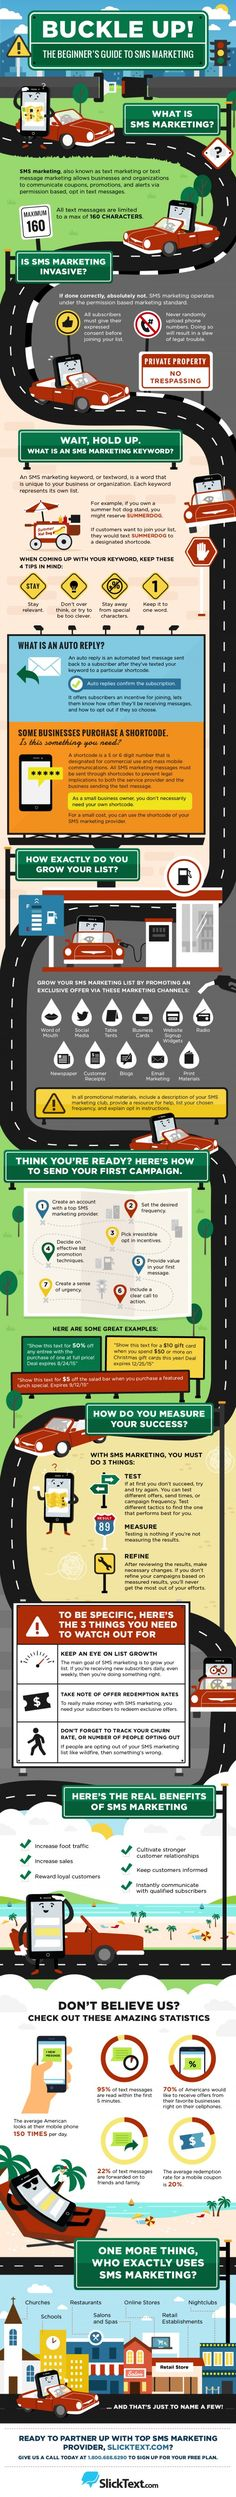 Buckle Up! #infografía